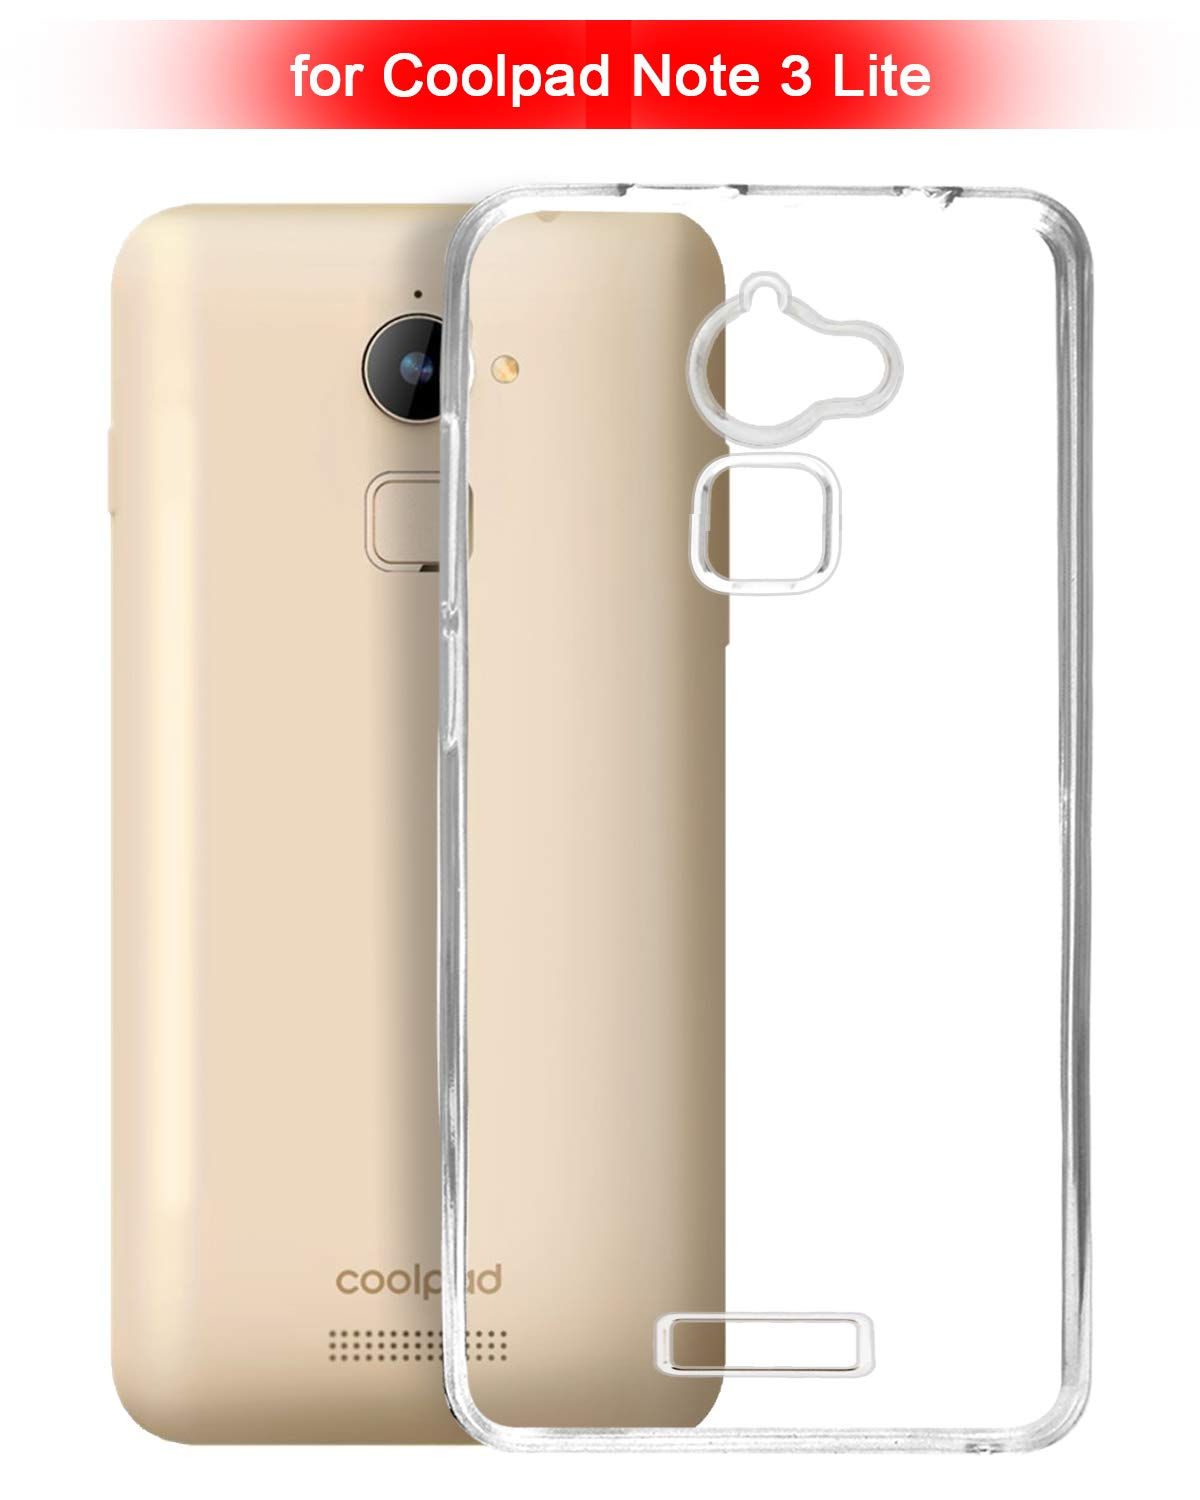 Coolpad Note 3 lite Silicone Soft Back Case Cover (Transparent)